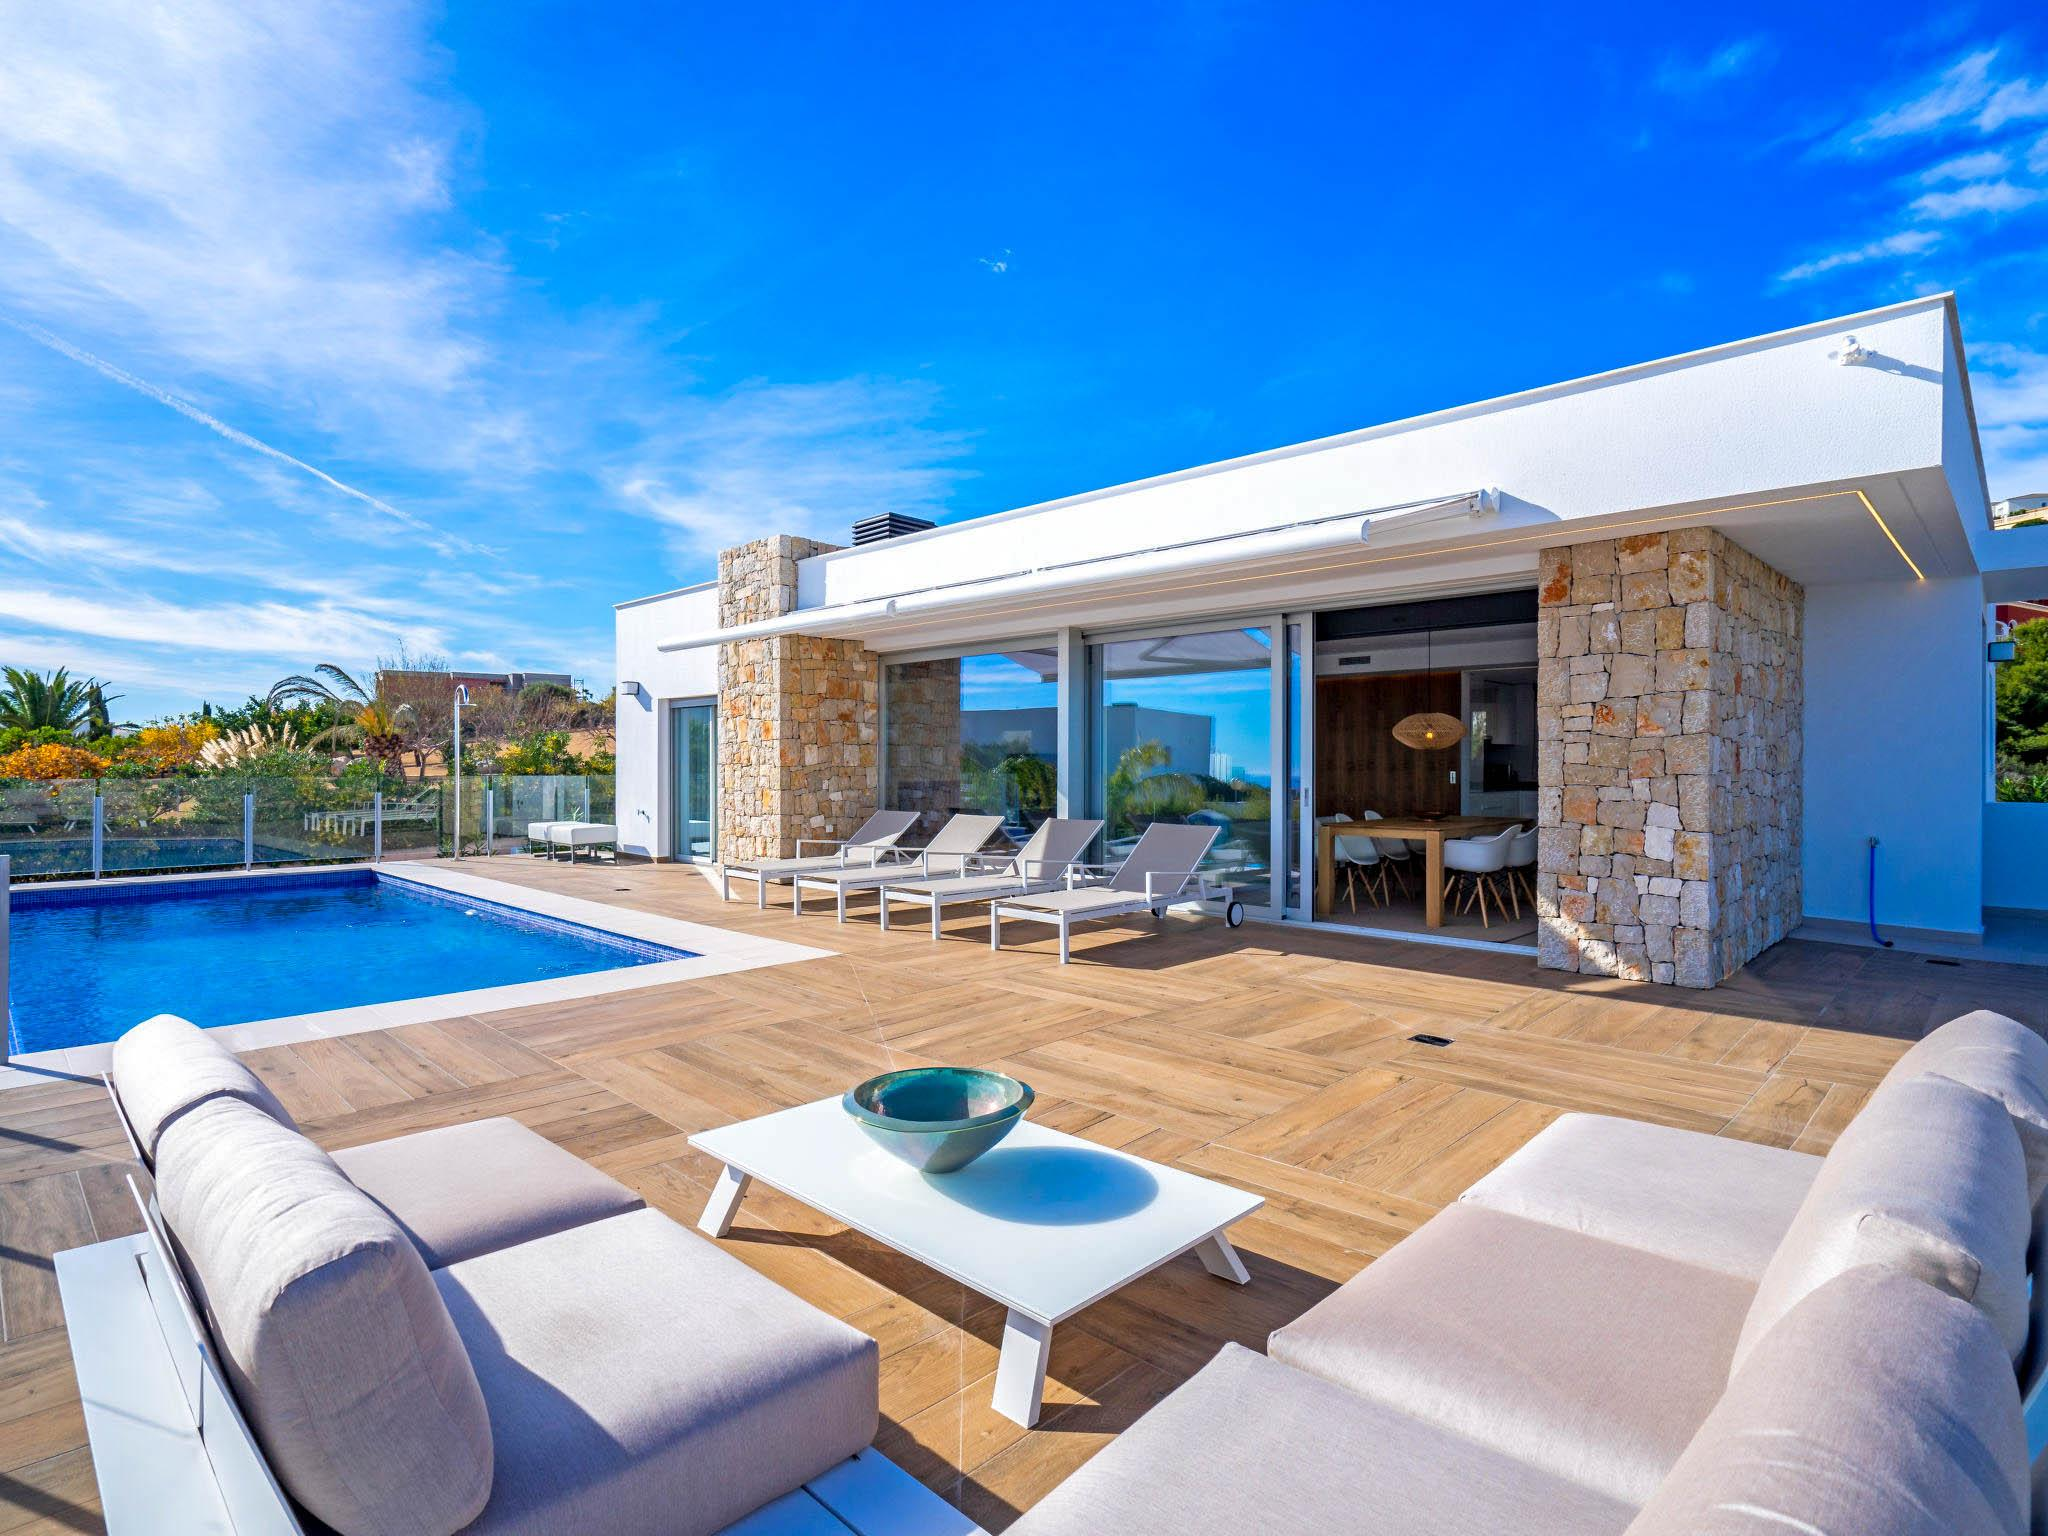 Property Image 1 - Elevated Stylish Upscale 3 Bedroom Villa with Wonderful Sea Views in Alicante